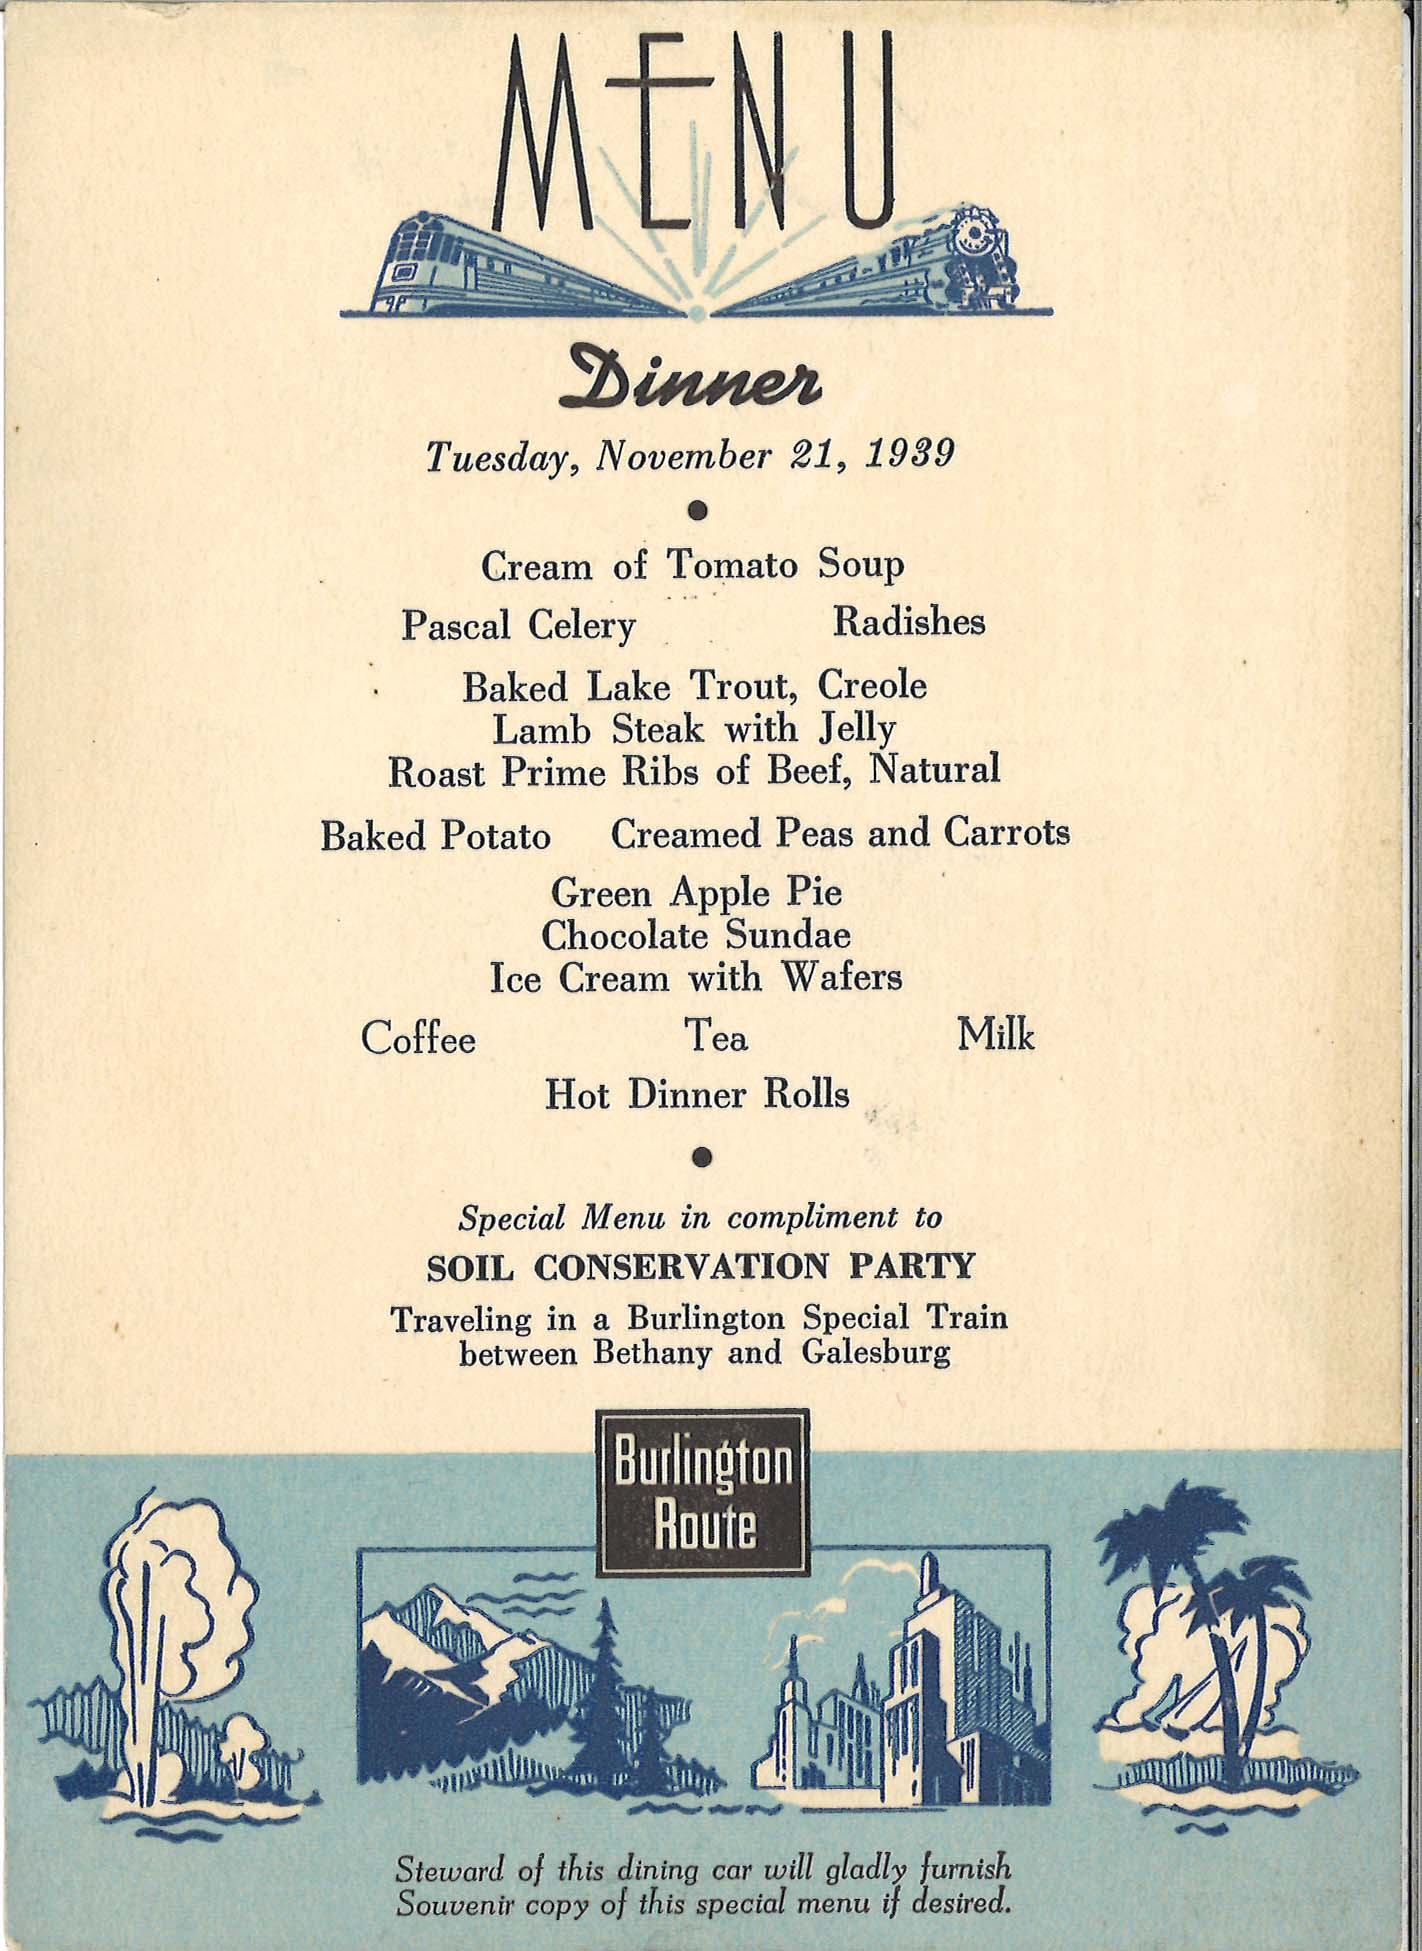 Burlington Soil Conservation Party Dinner Menu.jpg